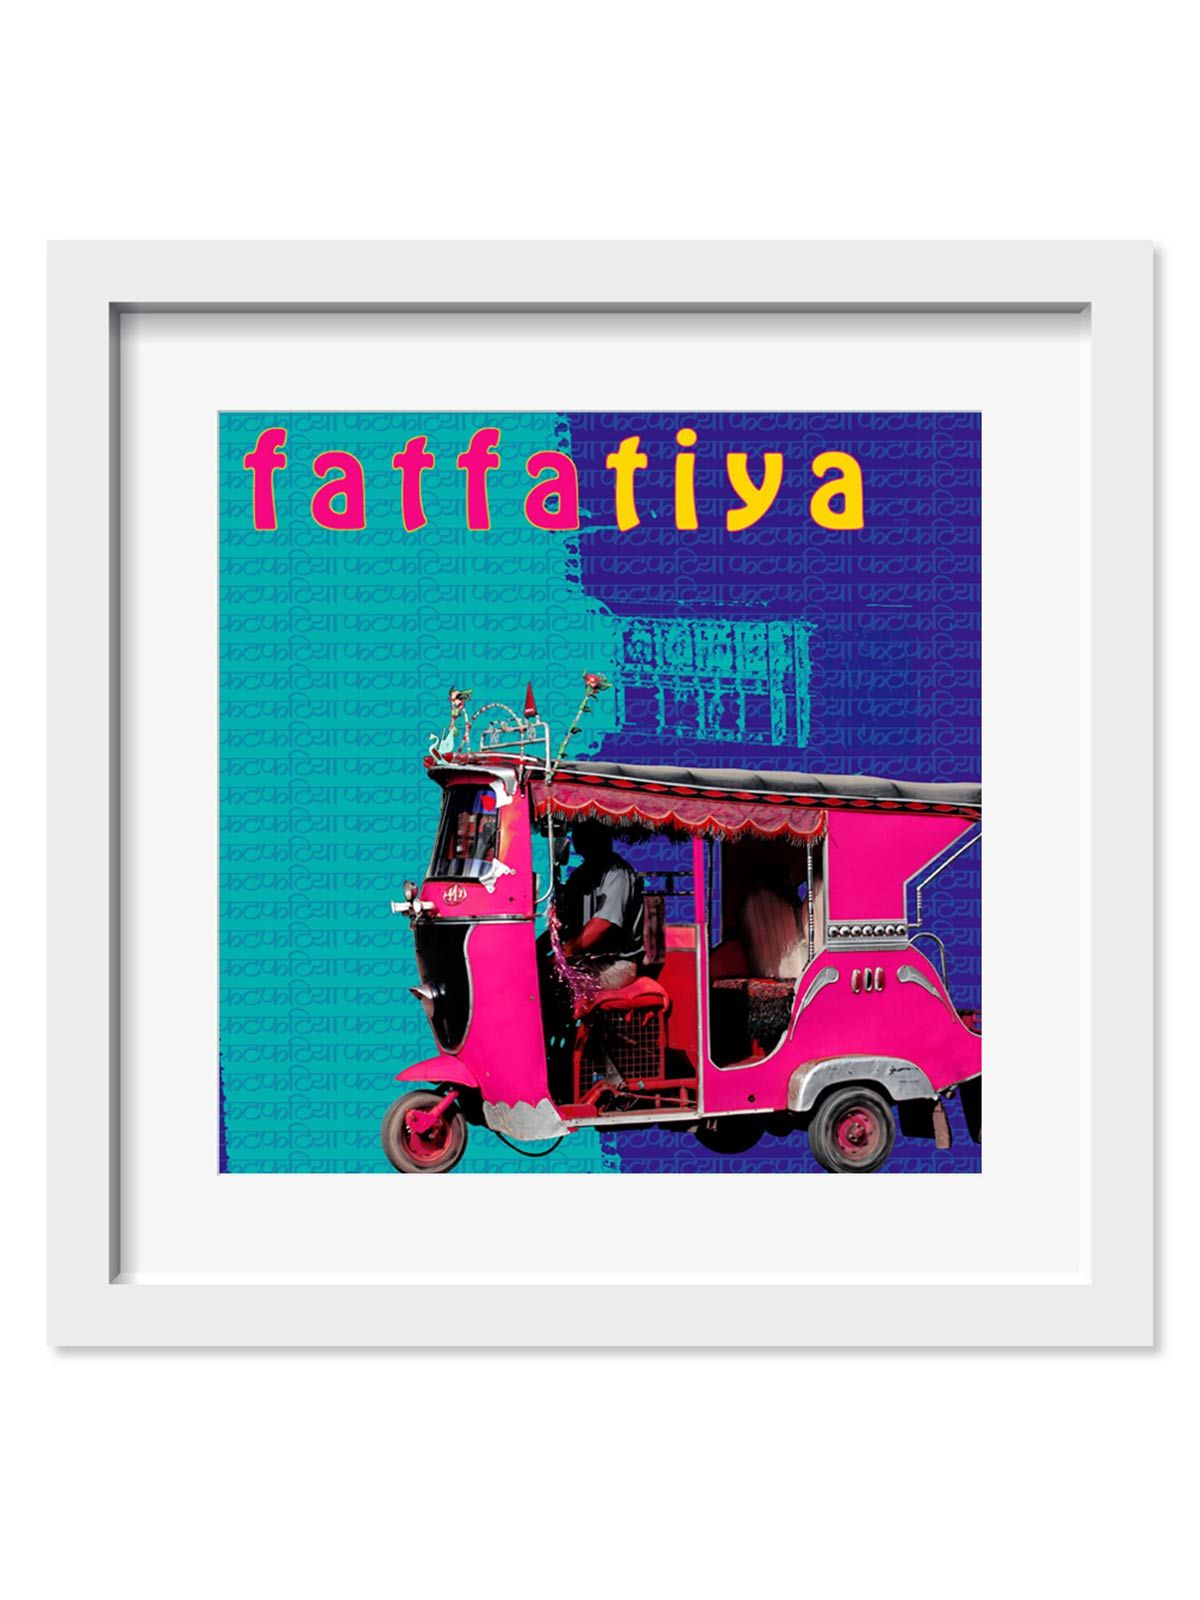 Pink Taxi Art Print - 18X18 Inches